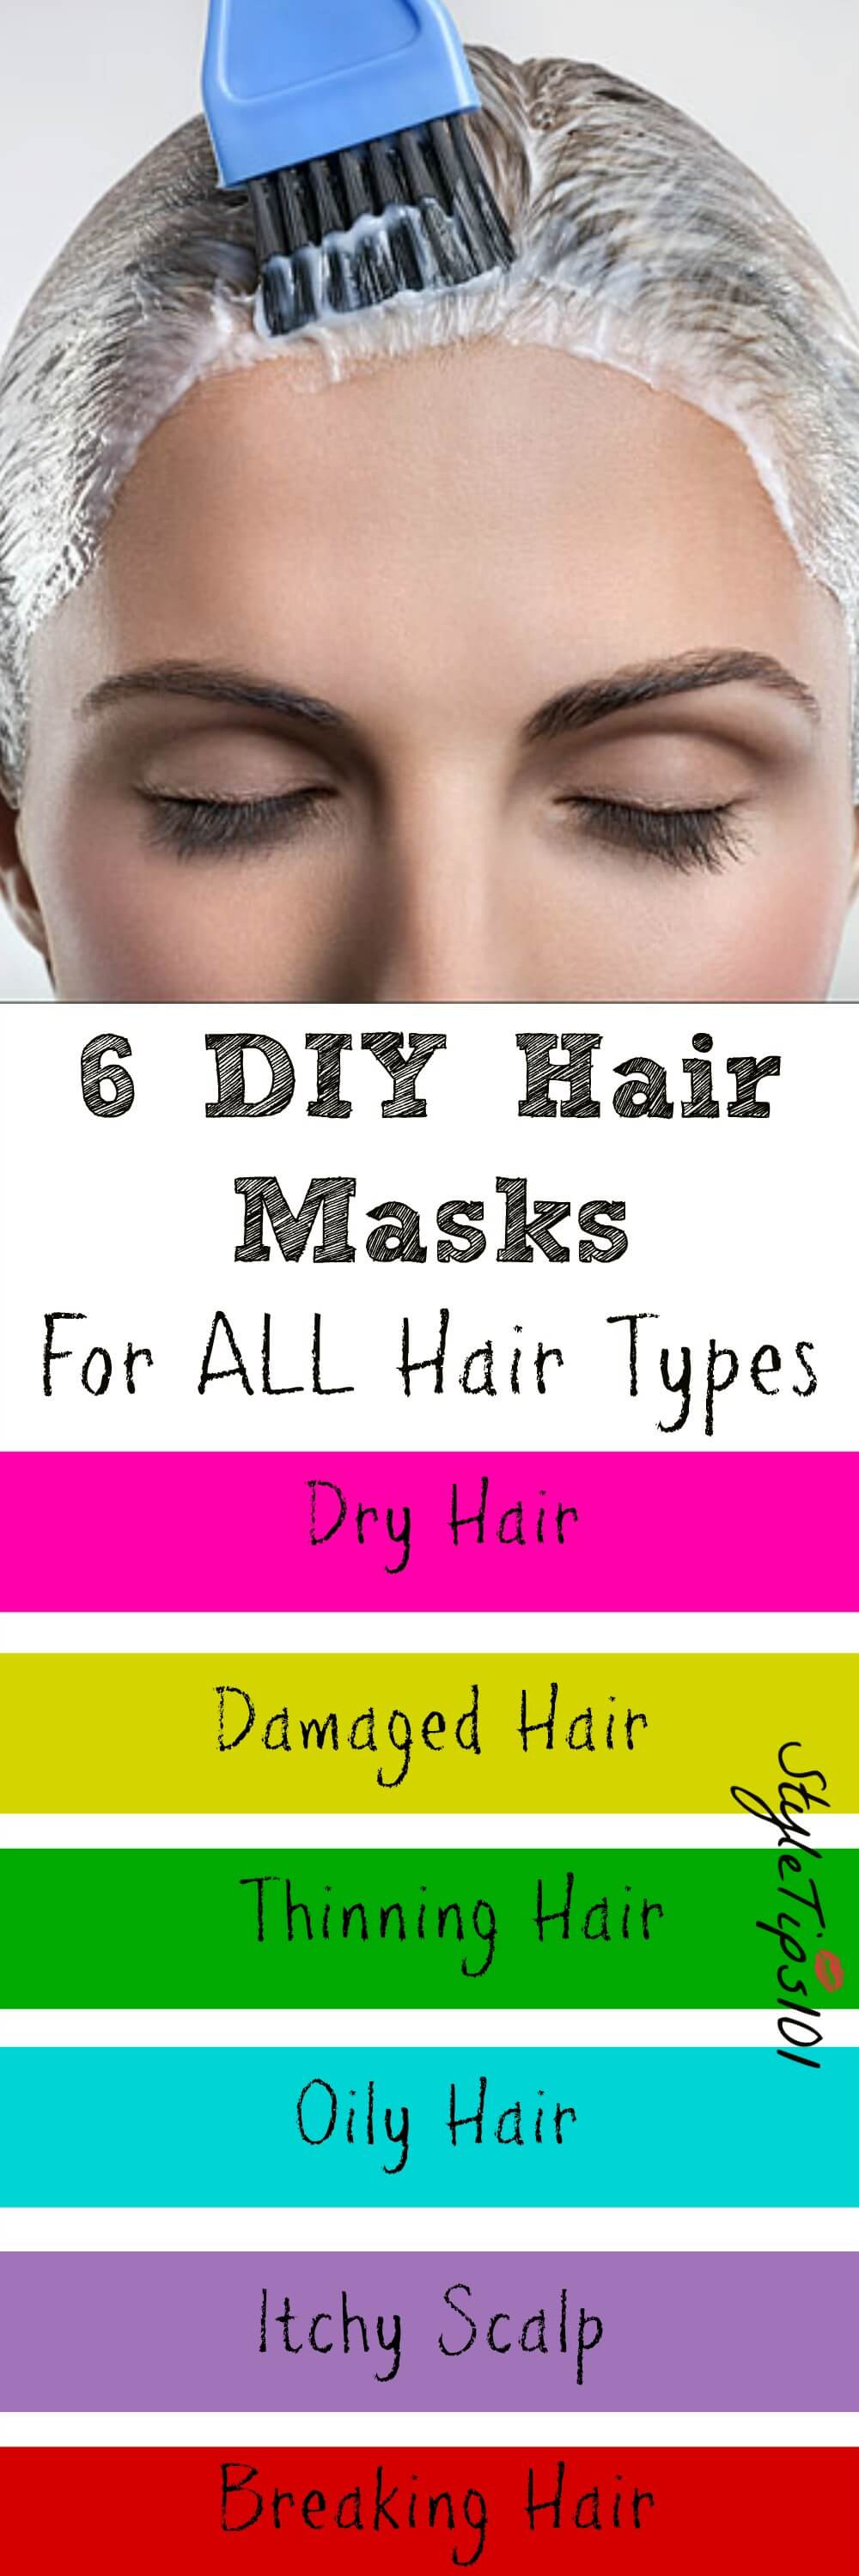 Best ideas about DIY Hair Mask For Dry Scalp . Save or Pin 6 DIY Hair Masks For All Hair Types Now.